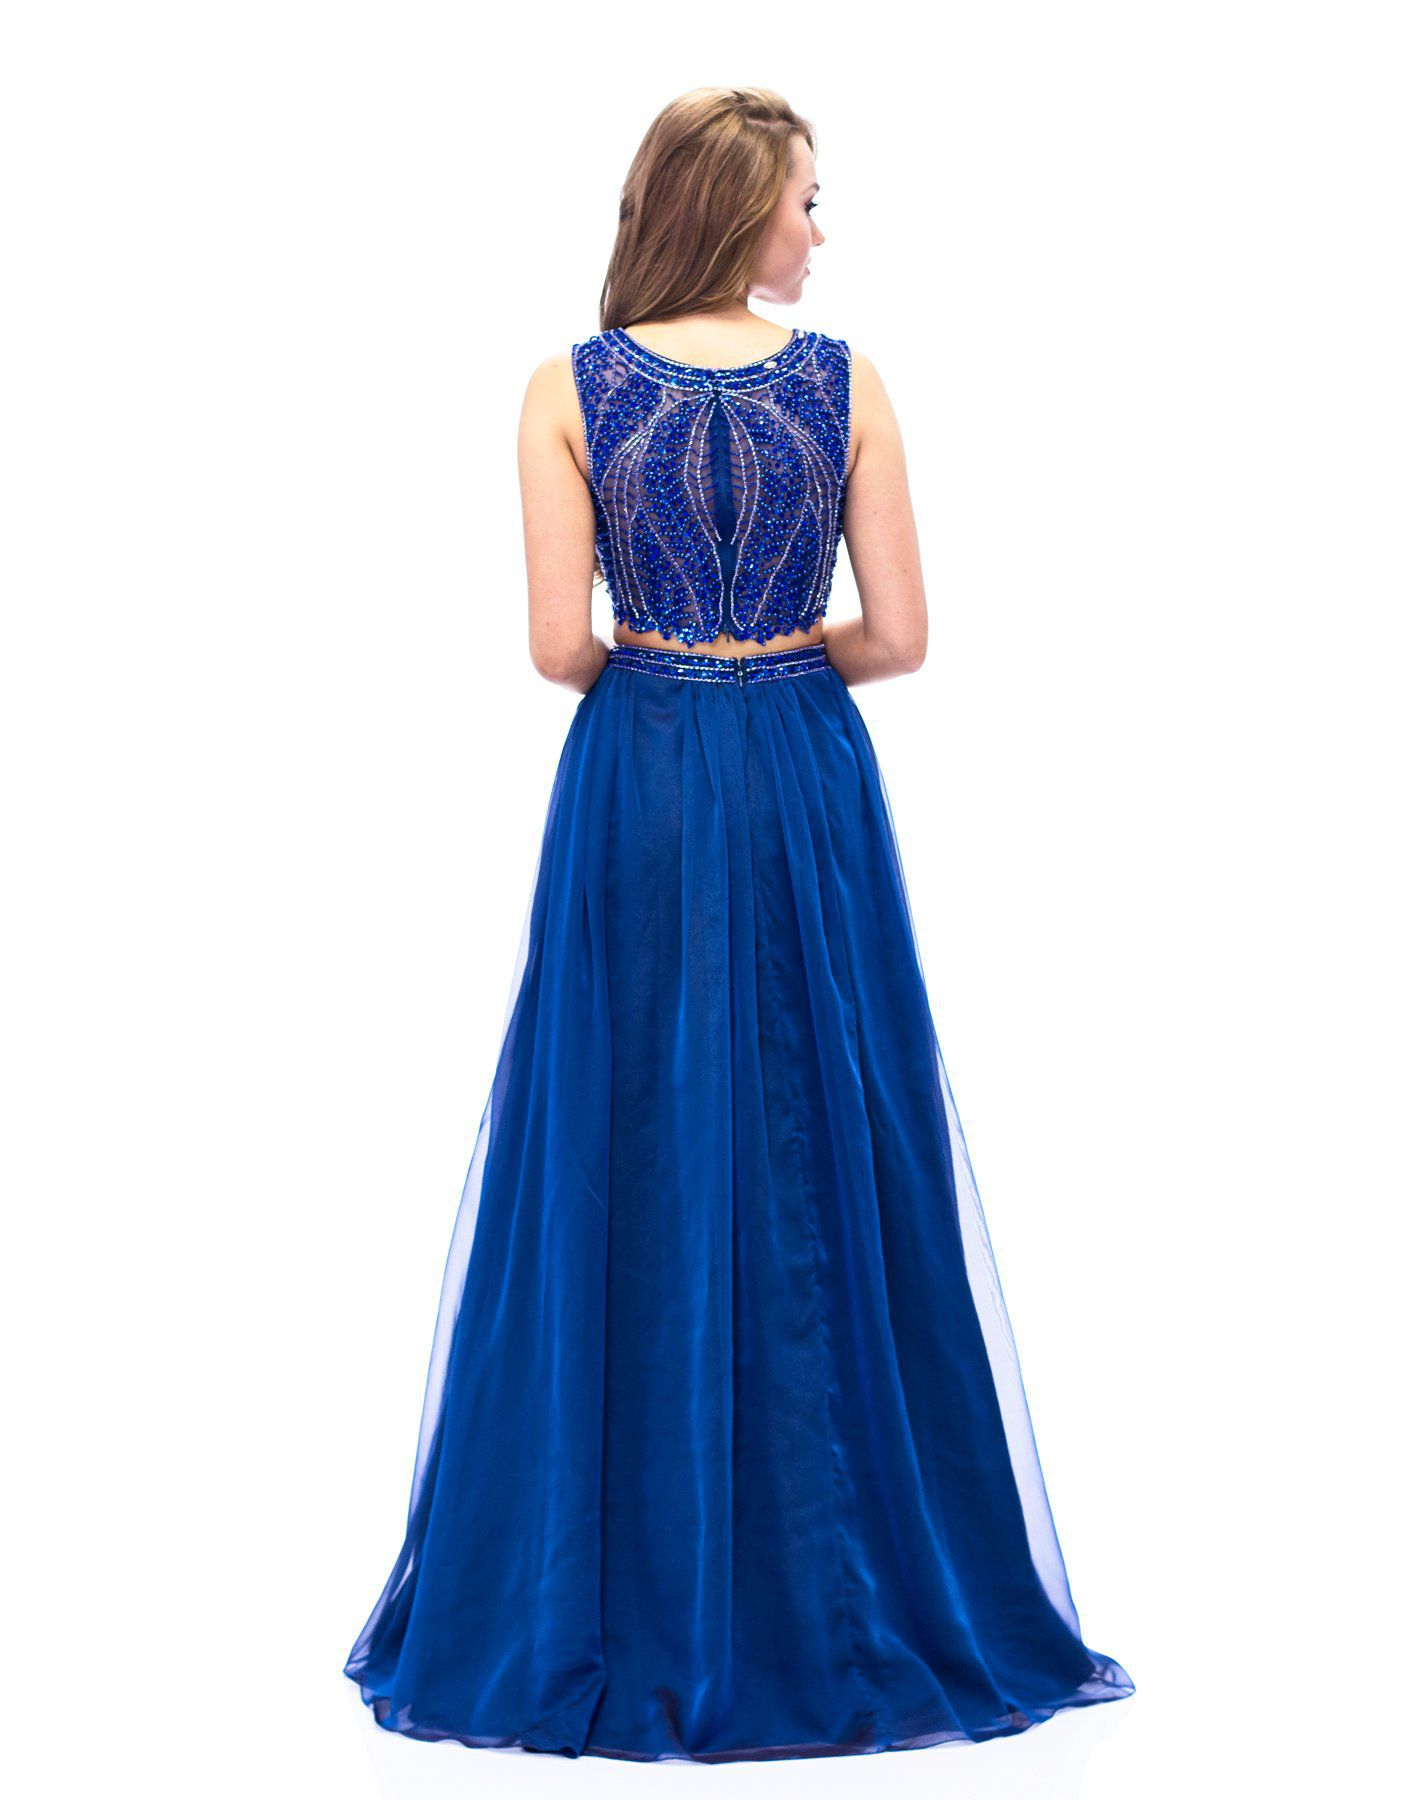 Style E1958 Milano Formals Blue Size 12 Tulle Tall Height Side slit Dress on Queenly